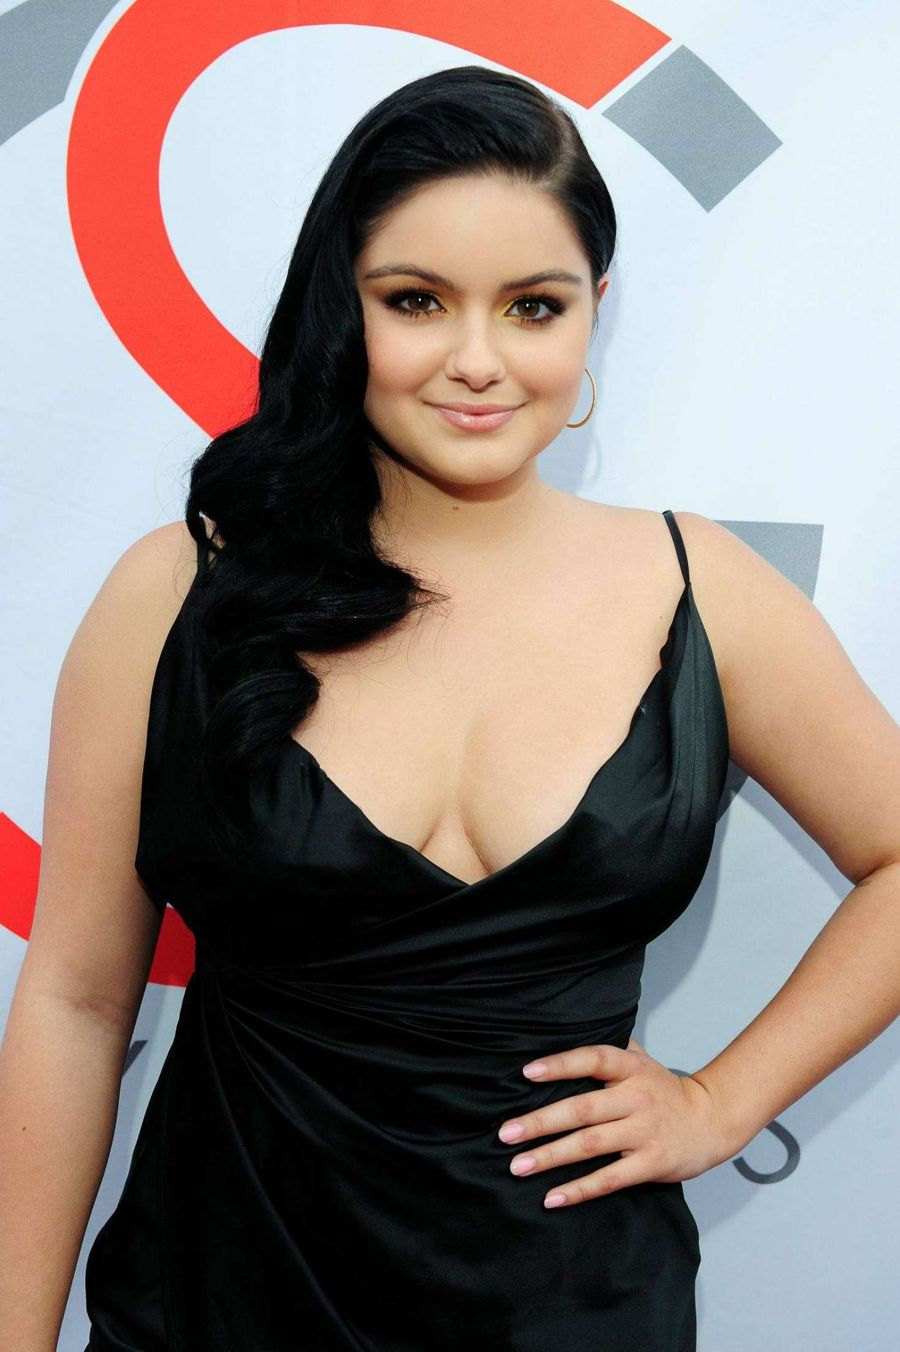 Ariel Winter - The Gray Studios Oscars 2016 Film Screenings